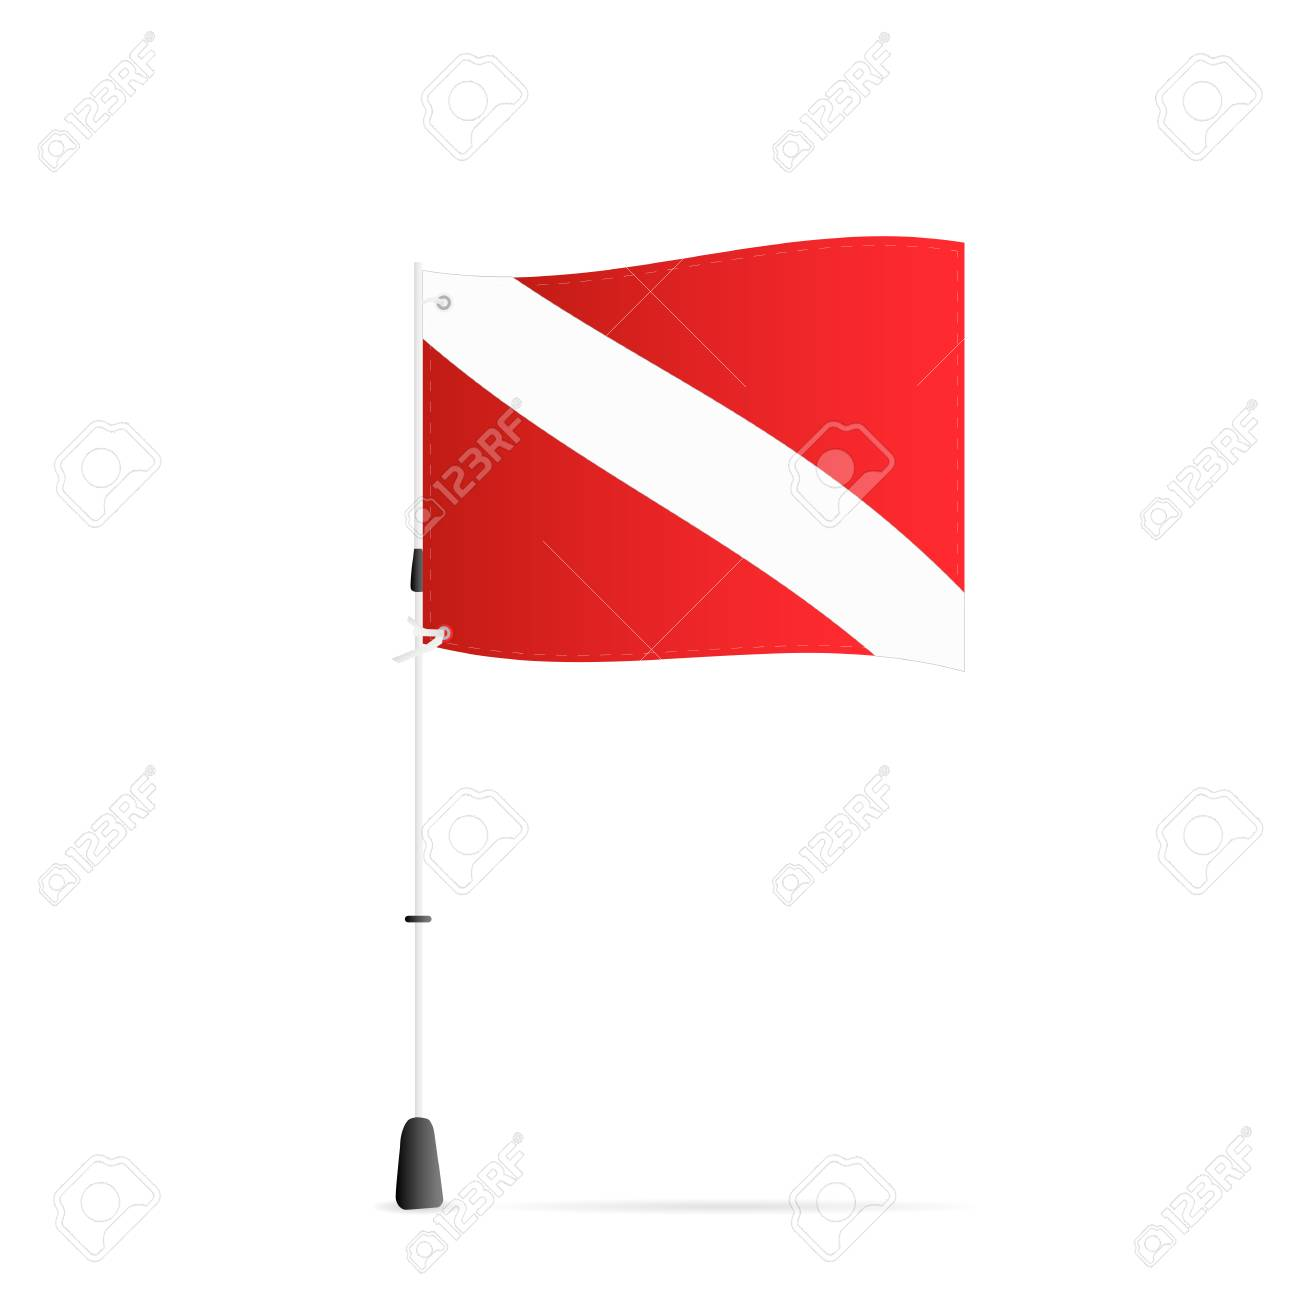 Illustration of a scuba flag isolated on a white background. - 97016350